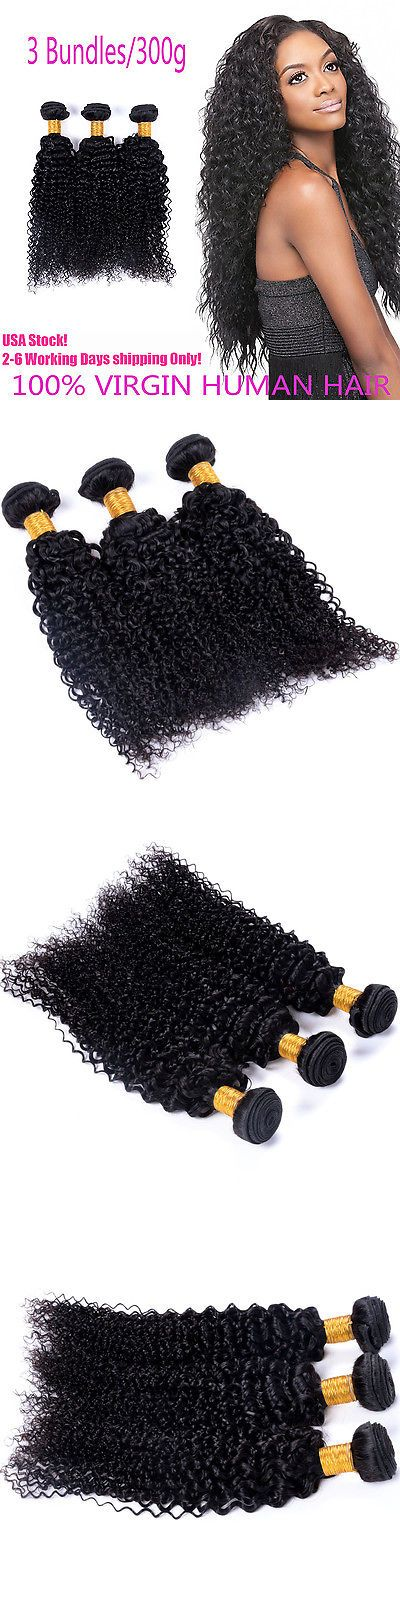 Hair Extensions: 300G/3 Bundles 7A Unprocessed Virgin Hair Peruvian Curly Human Hair Extension BUY IT NOW ONLY: $49.44